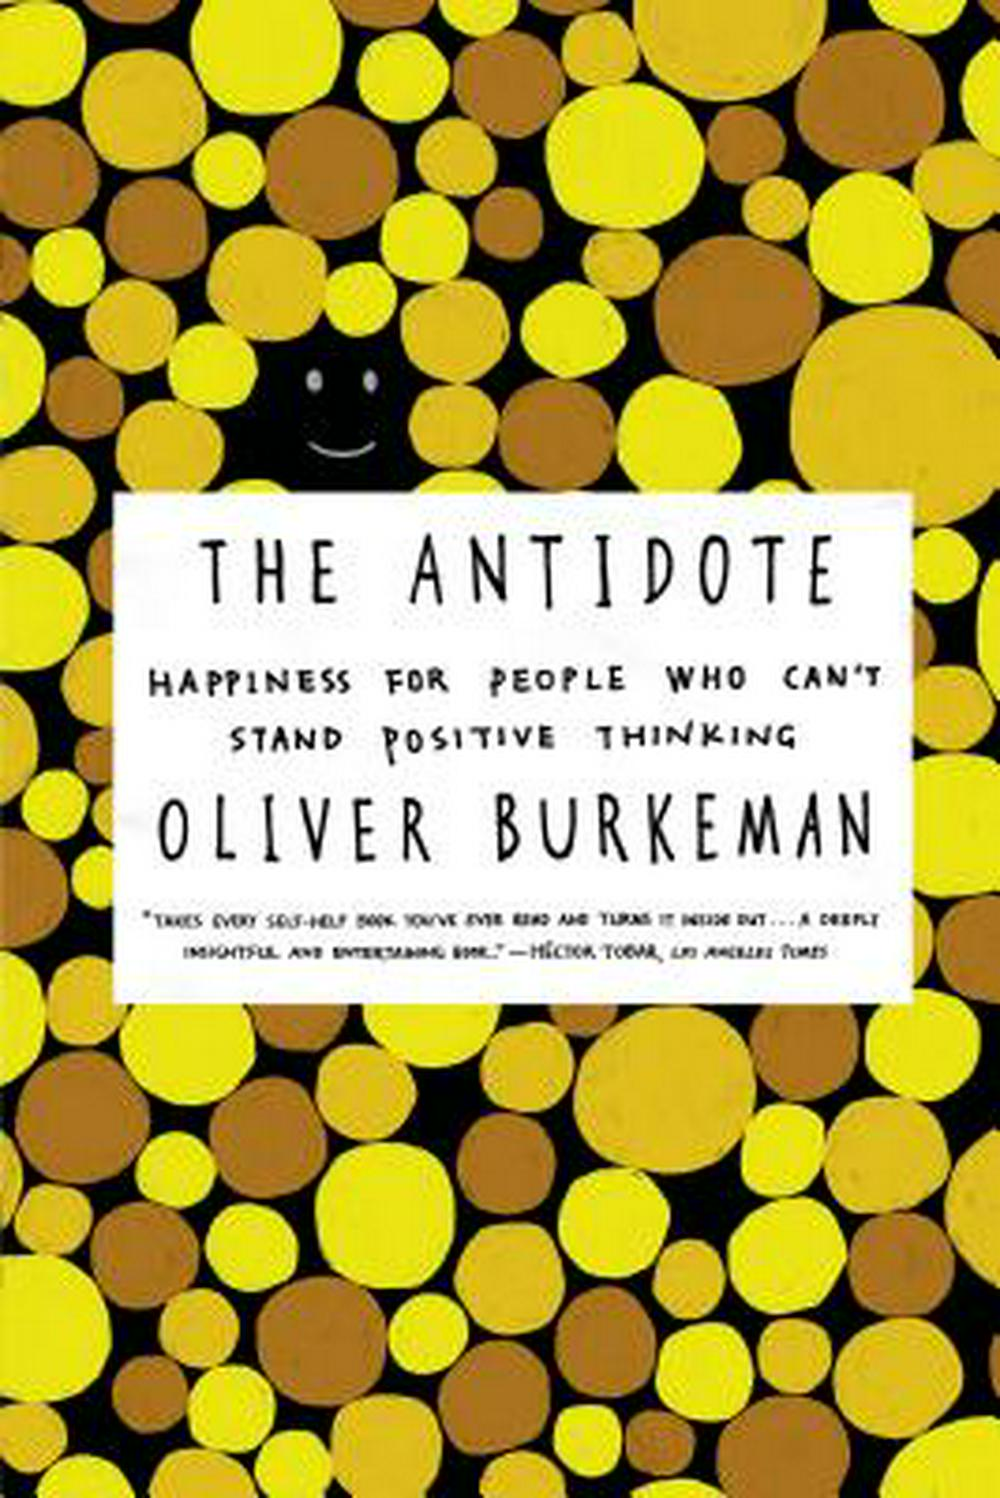 The Antidote by Oliver Burkeman, ISBN: 9780865478015